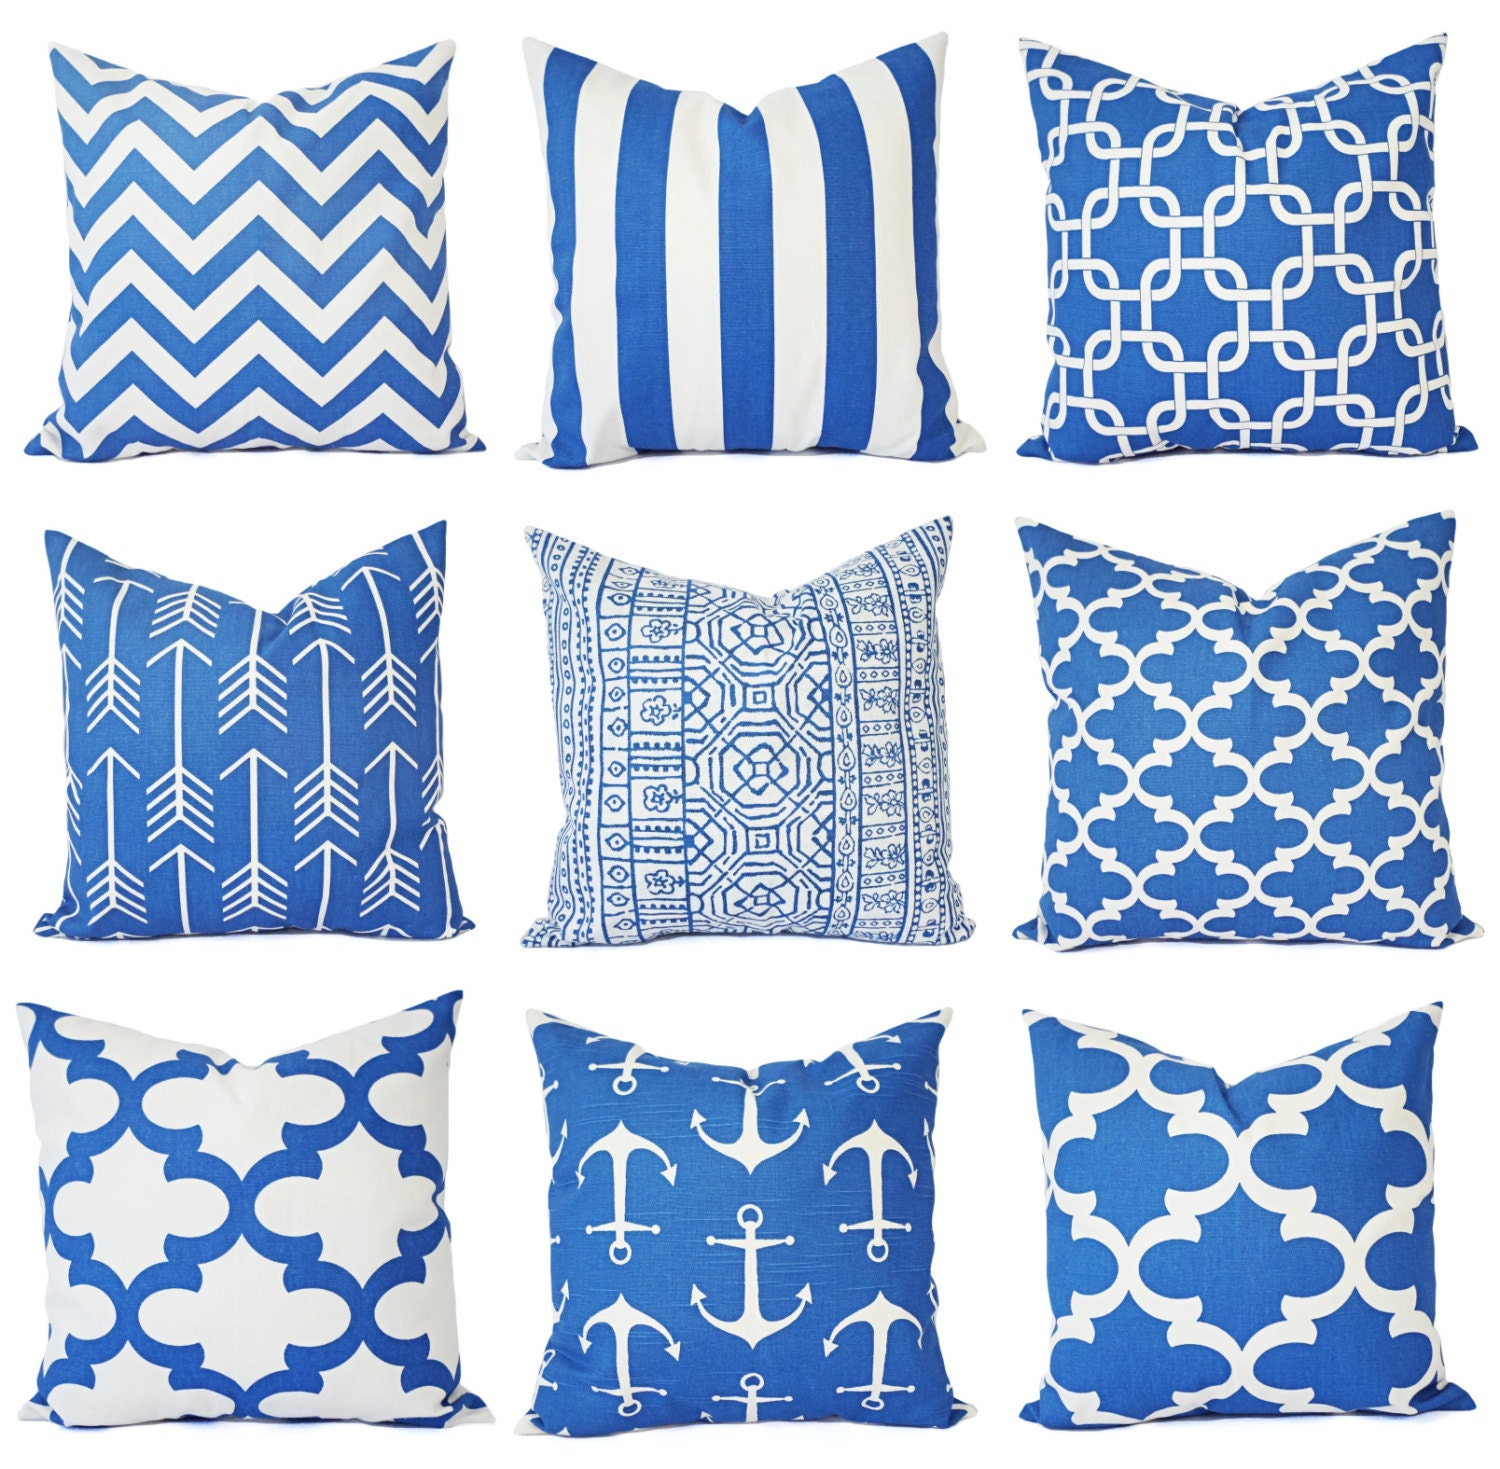 Royal Blue And White Throw Pillows : Royal Blue Pillow Covers Blue Throw Pillows Throw Pillow